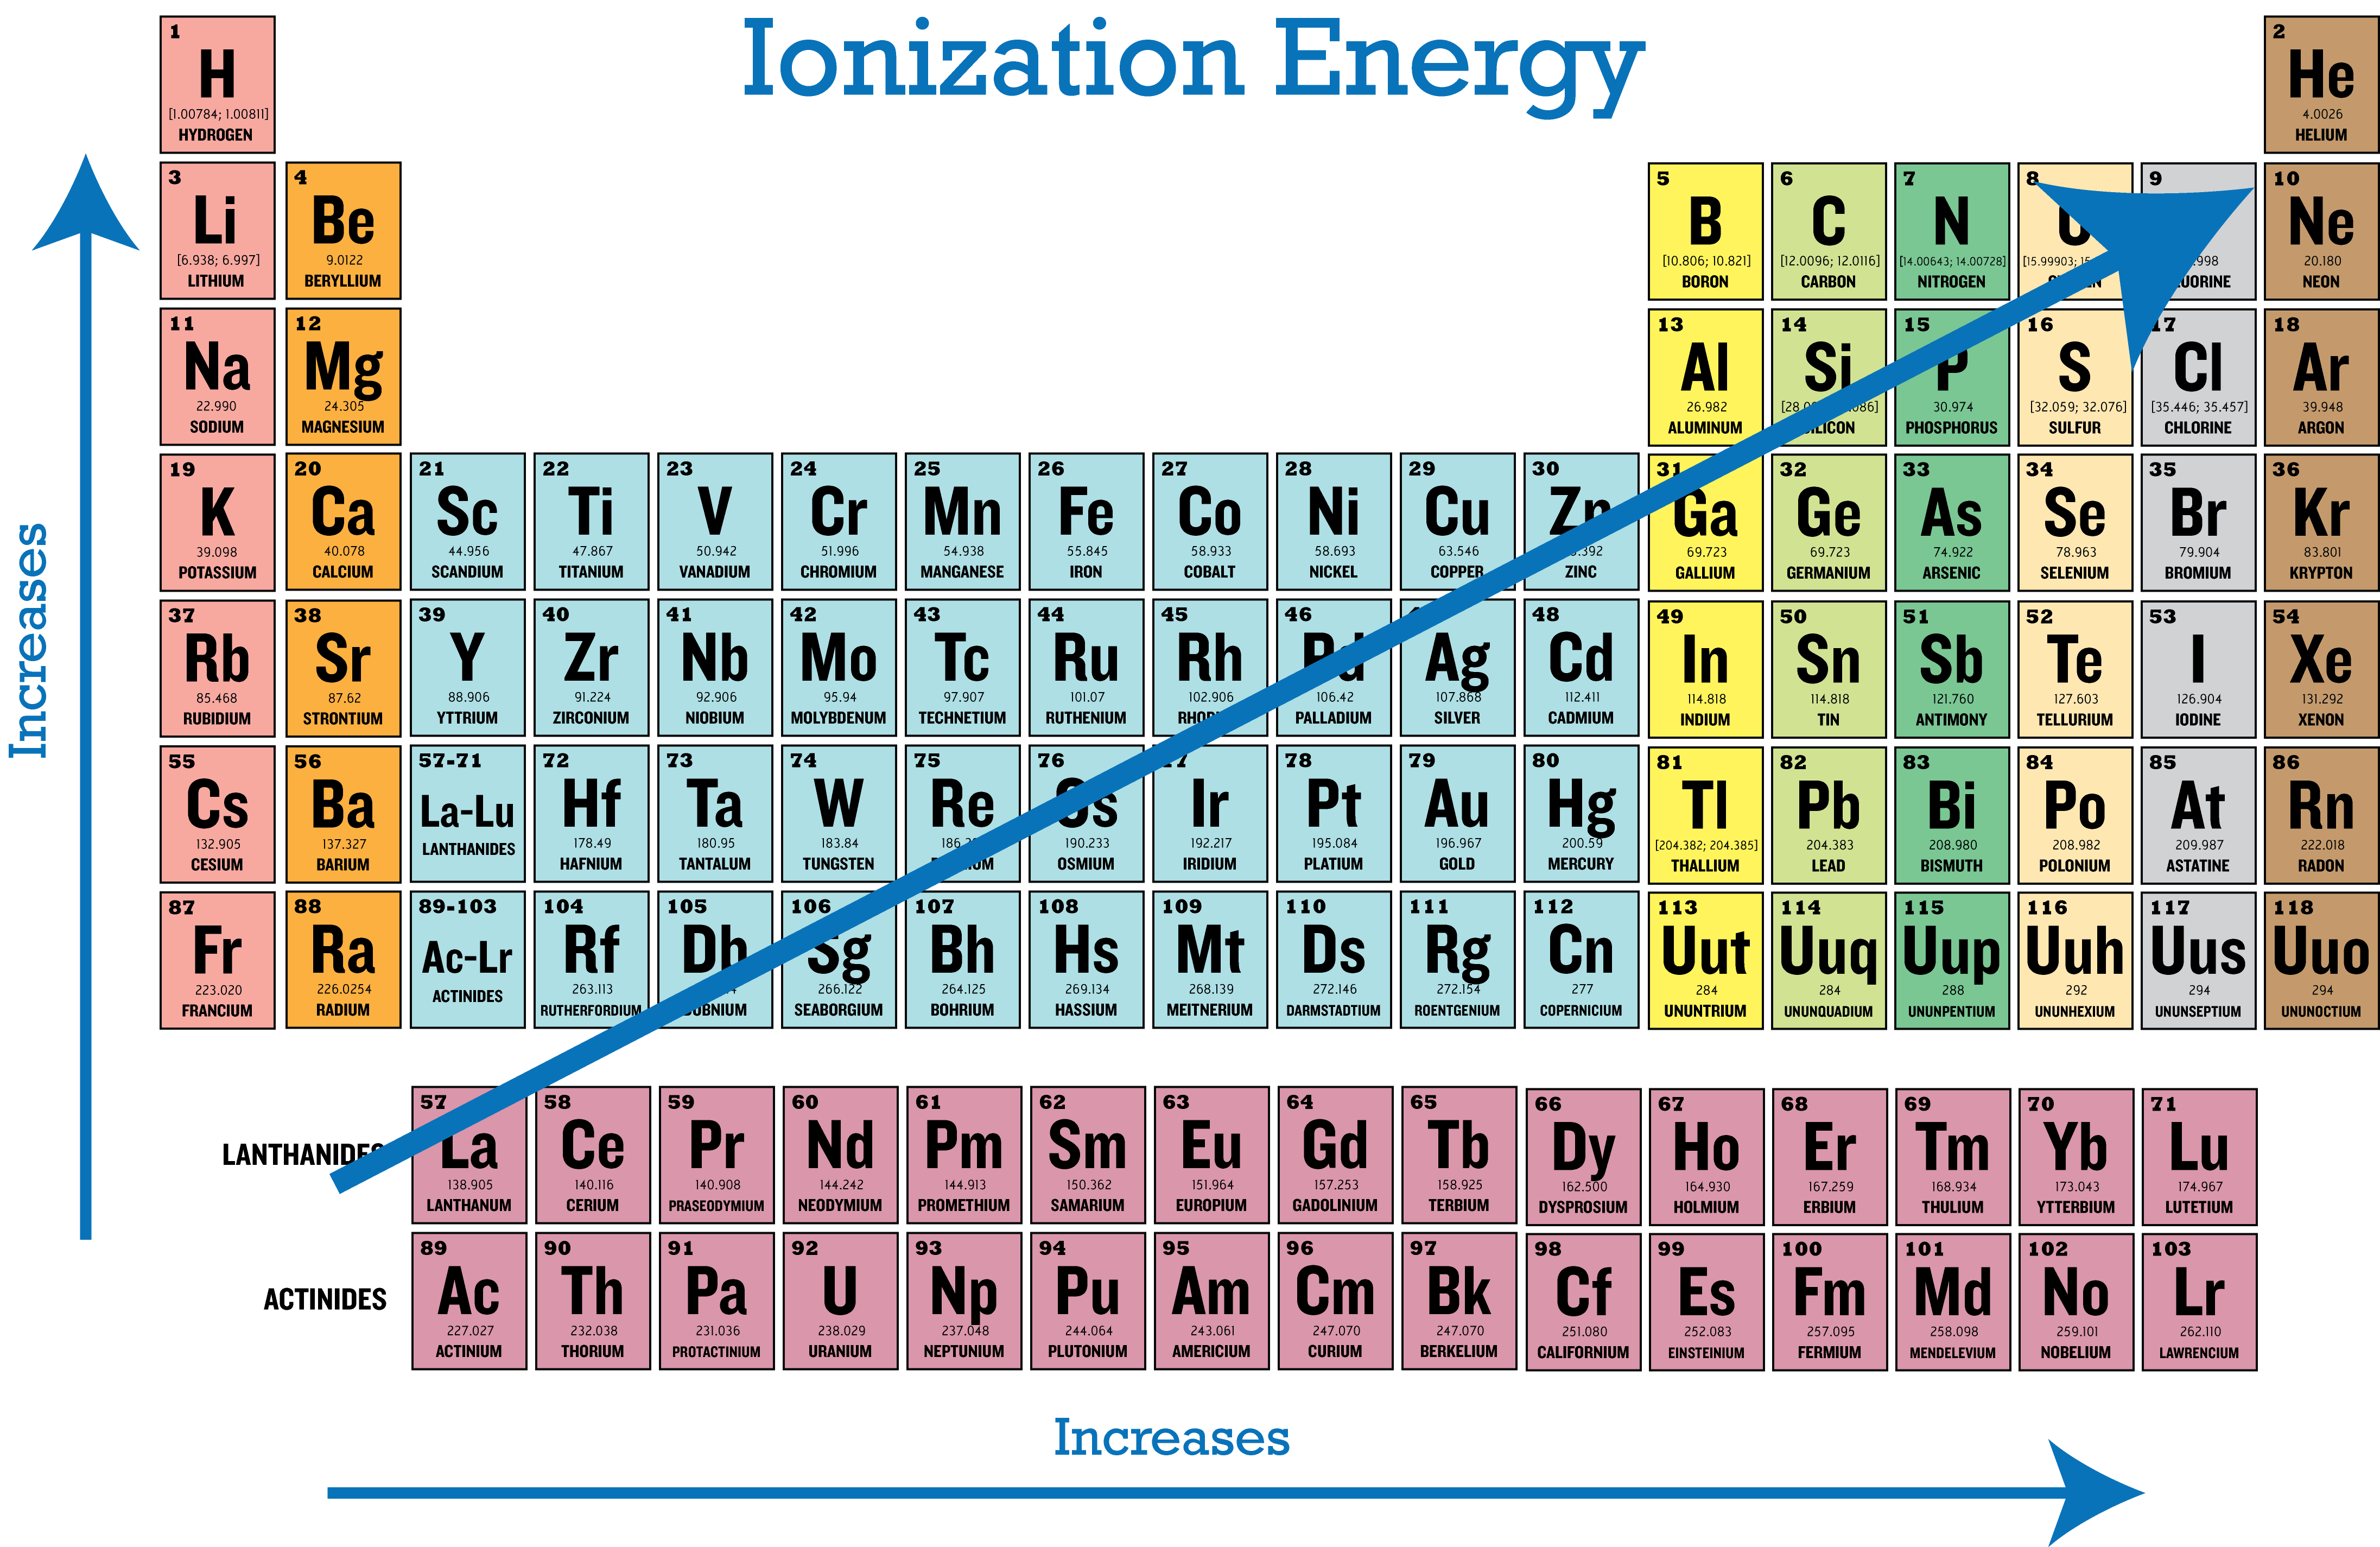 Periodic Trends in Ionization Energy | CK-12 Foundation